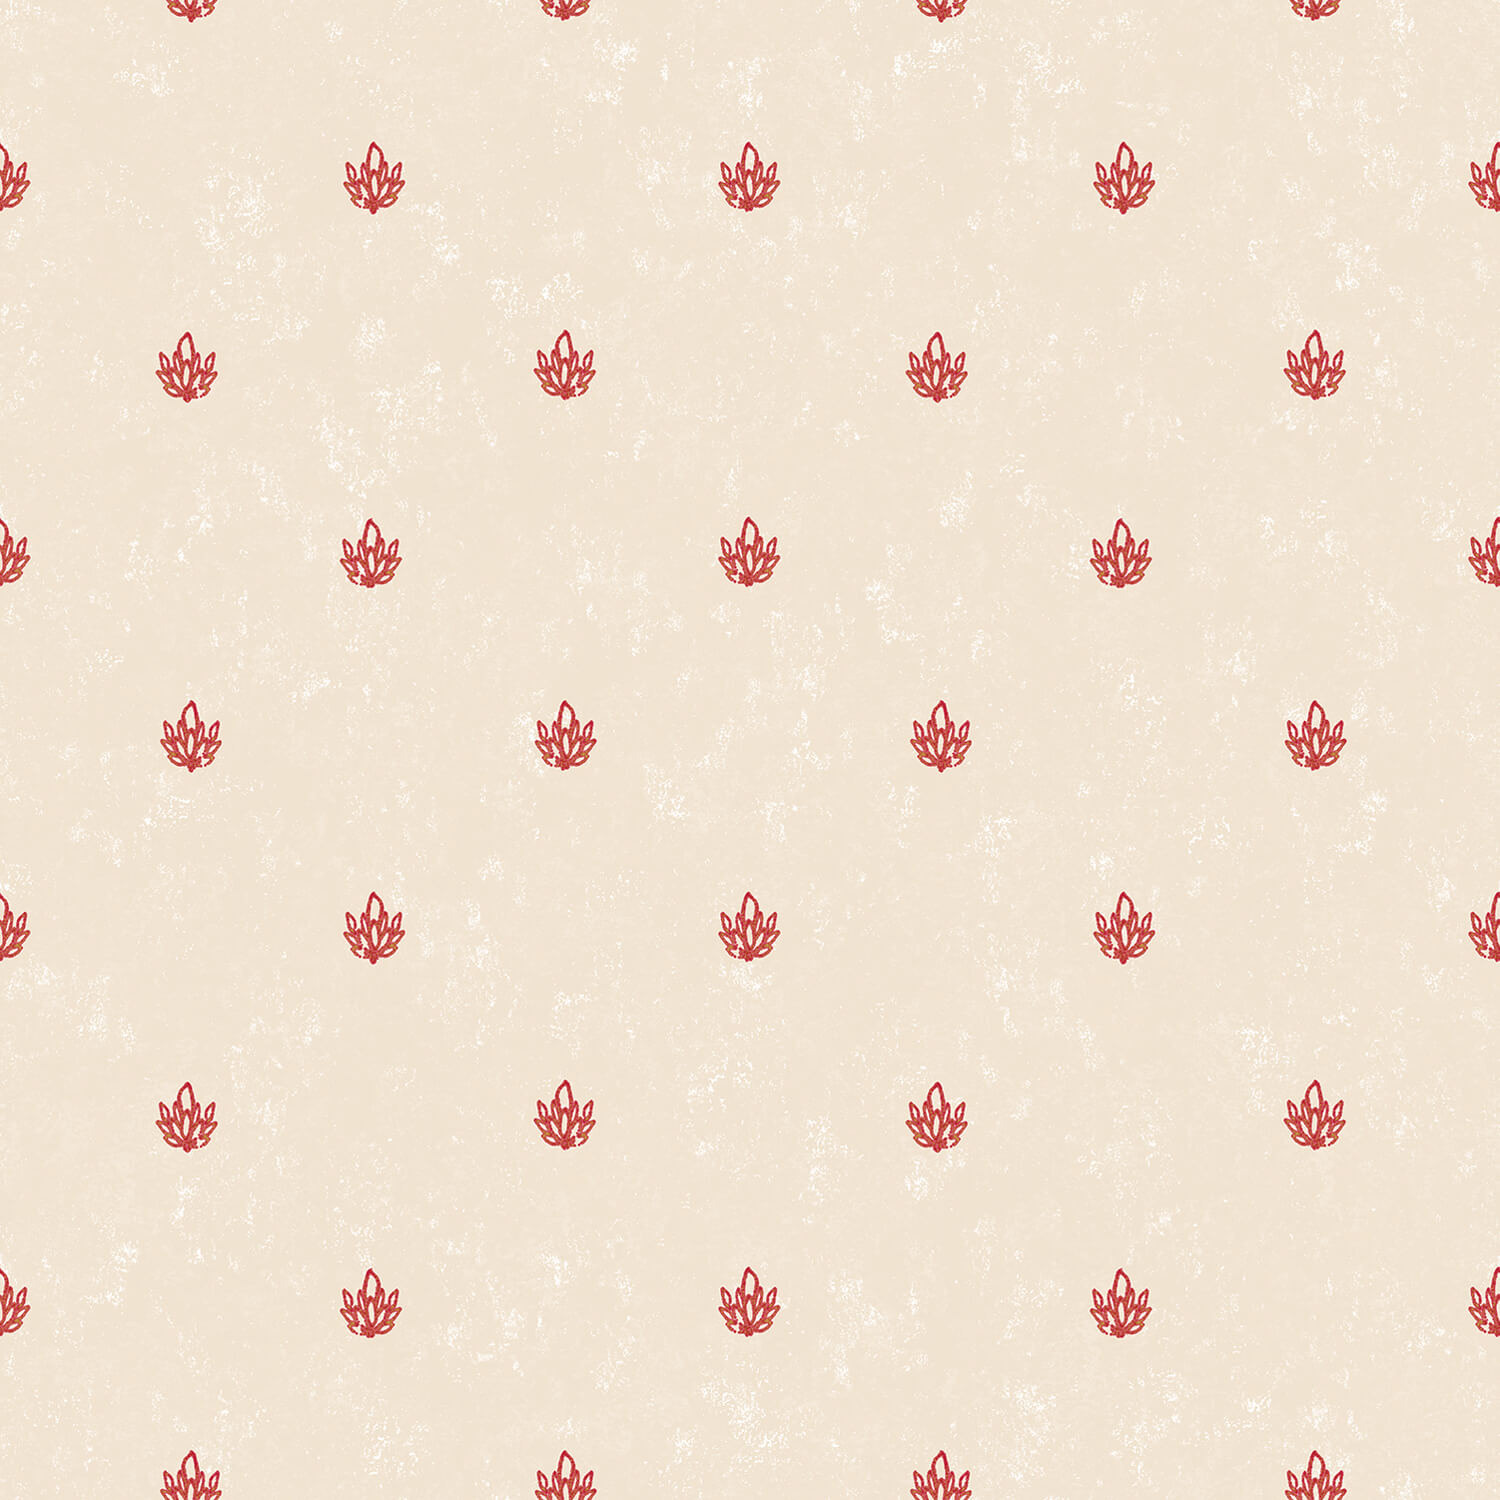 Galerie Small Classic Print Wallpaper, Red